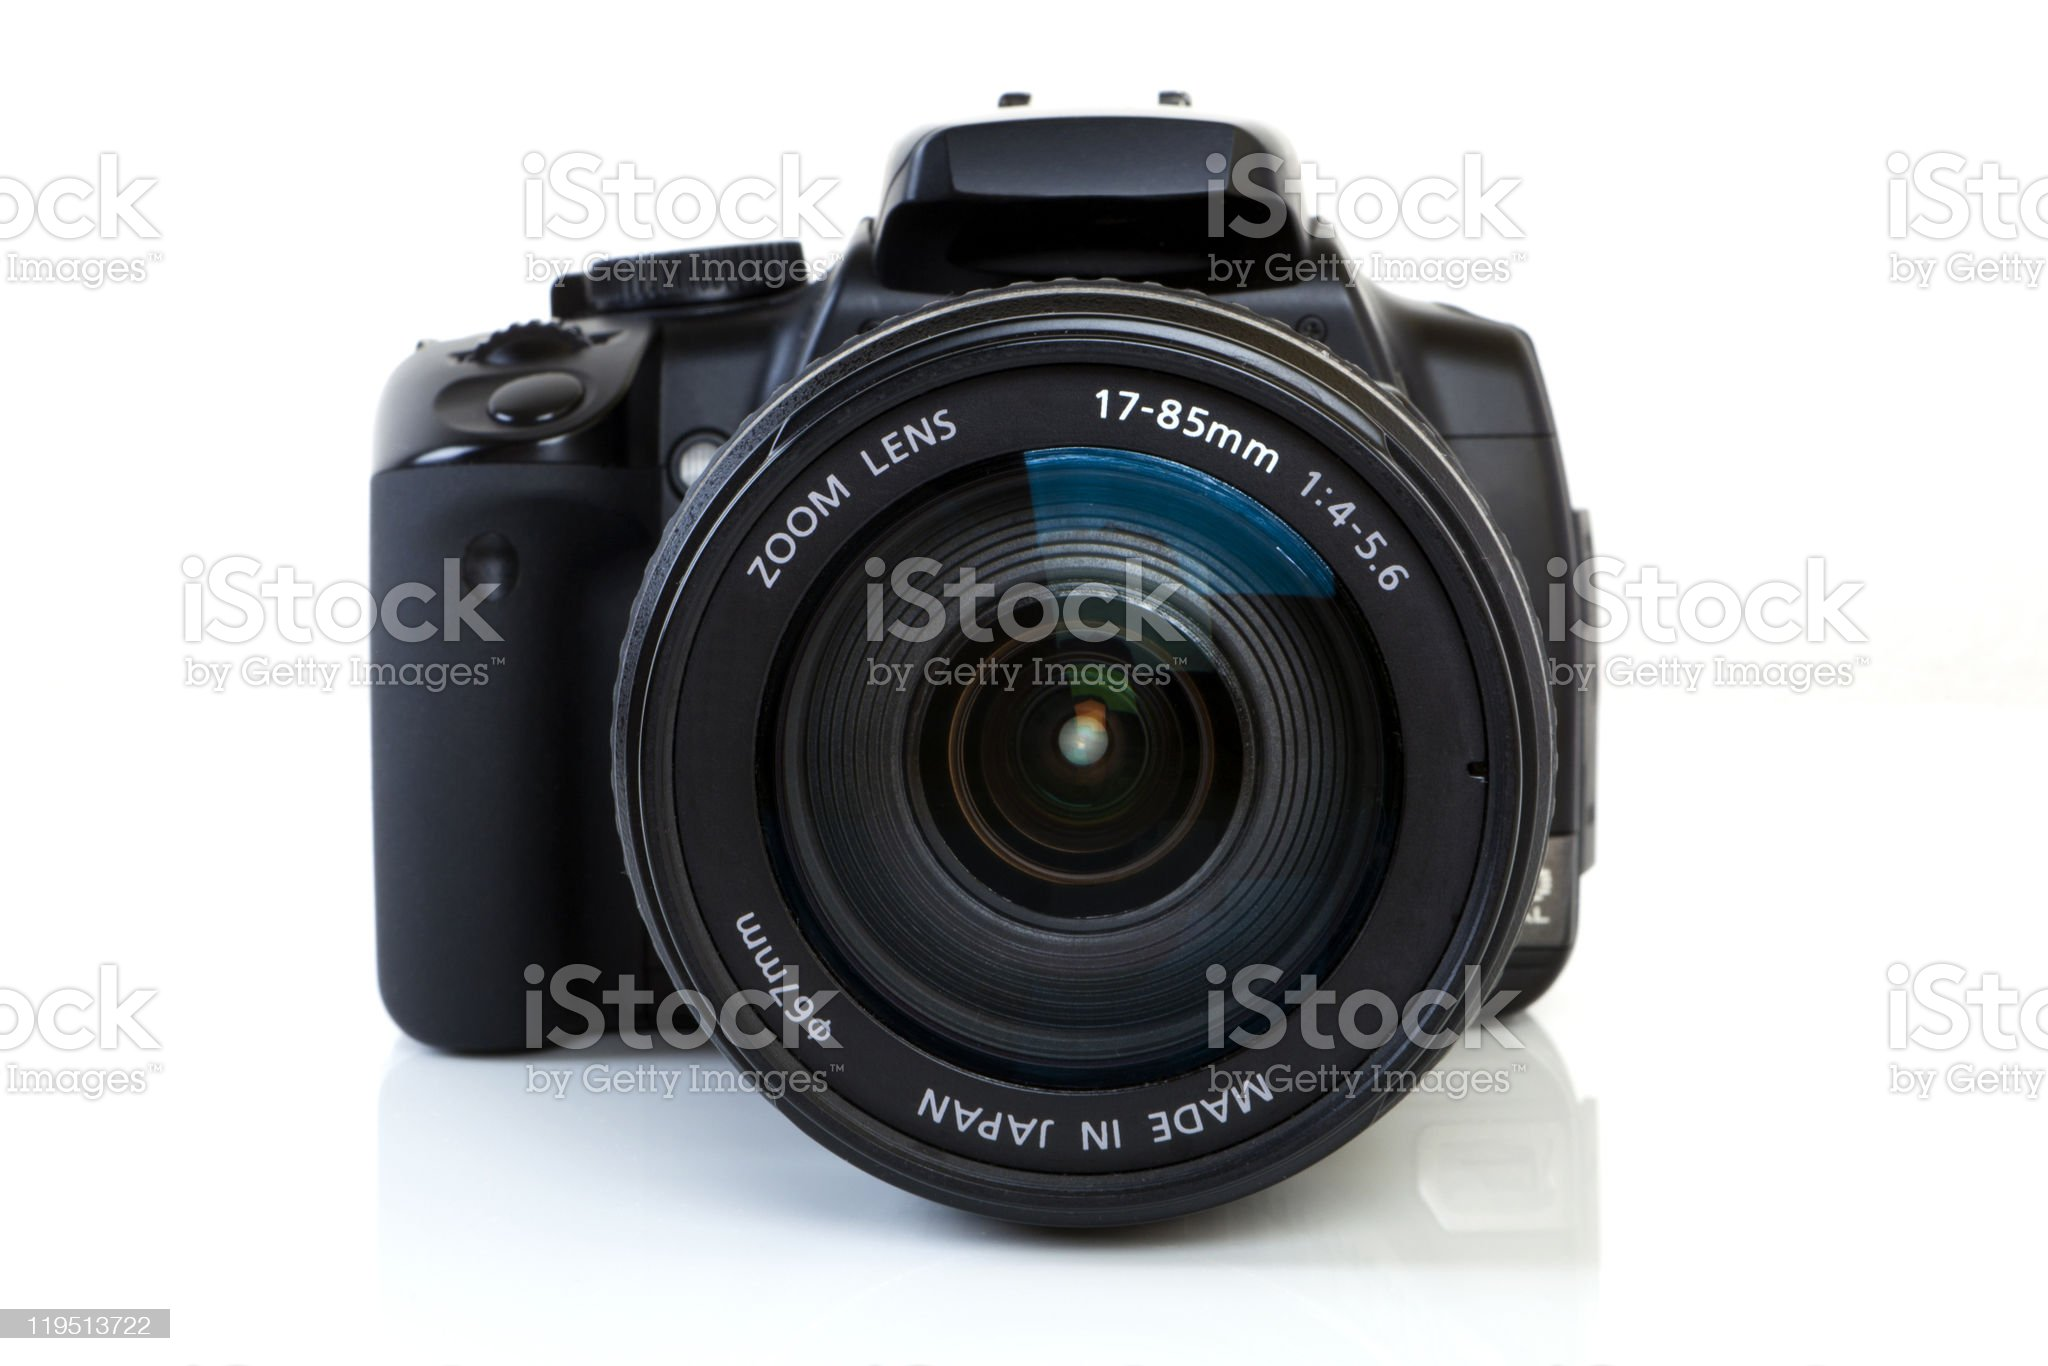 DSLR Camera - front view royalty-free stock photo